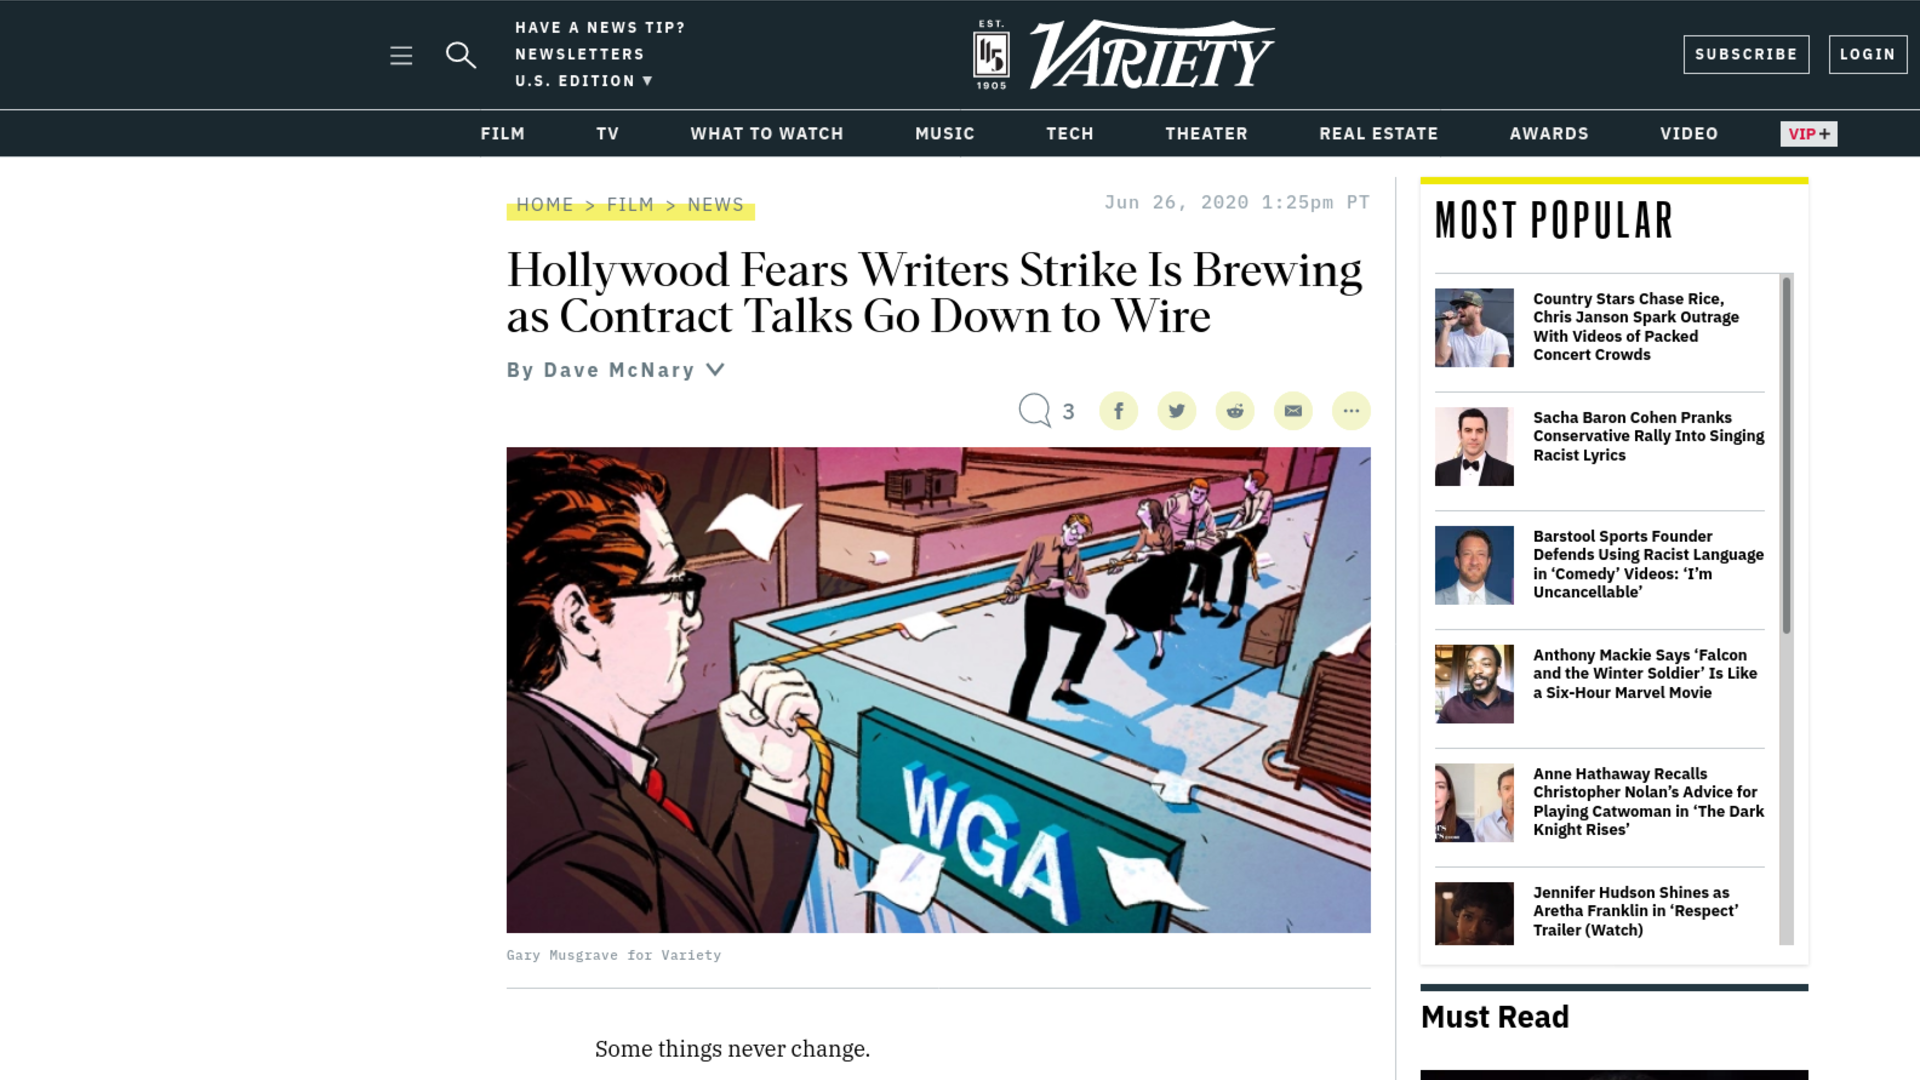 Fairness Rocks News Hollywood Fears Writers Strike Is Brewing as Contract Talks Go Down to Wire